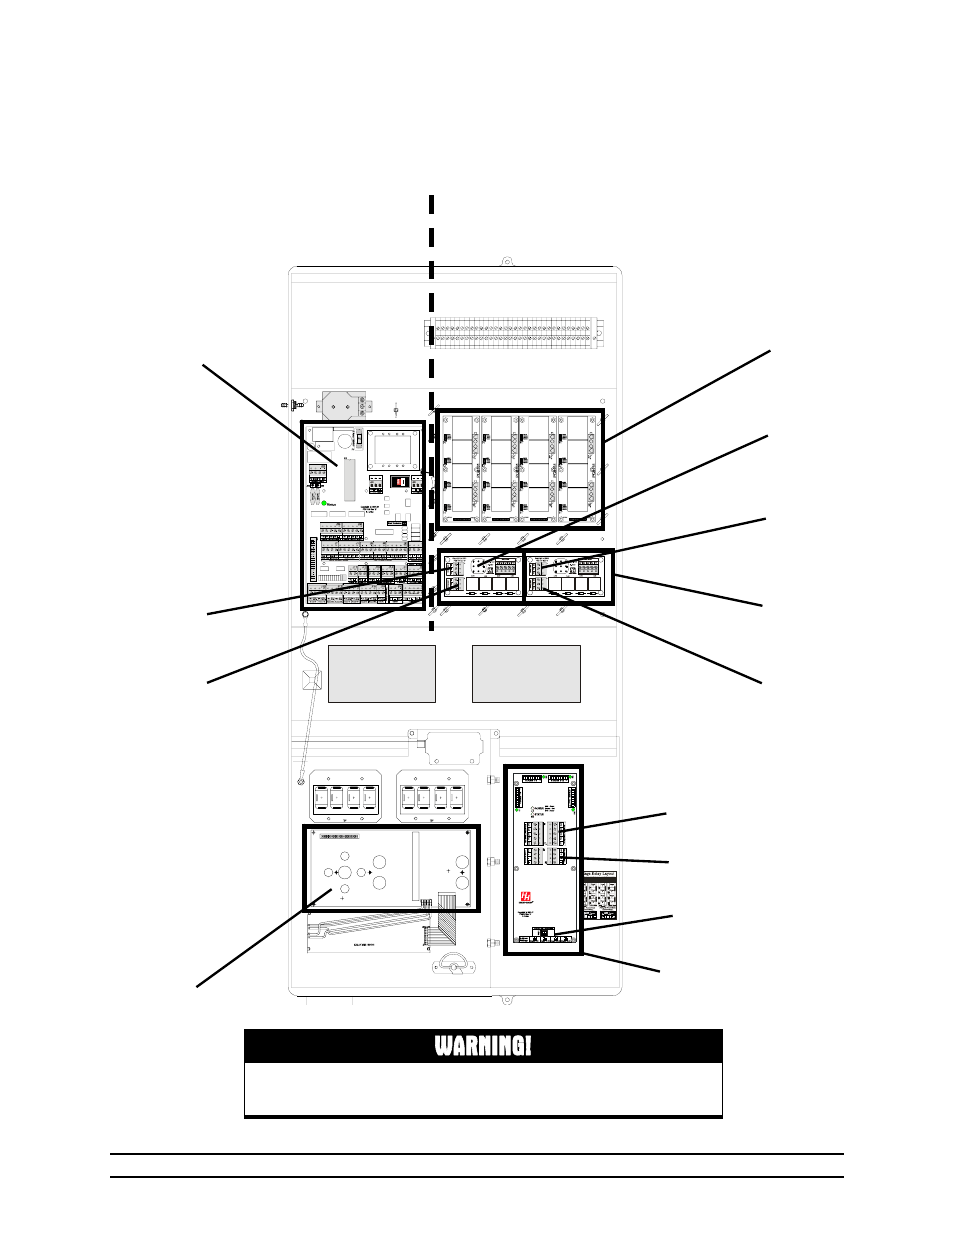 medium resolution of warning wiring diagrams hired hand evolution series 3000 3001 user manual page 44 70